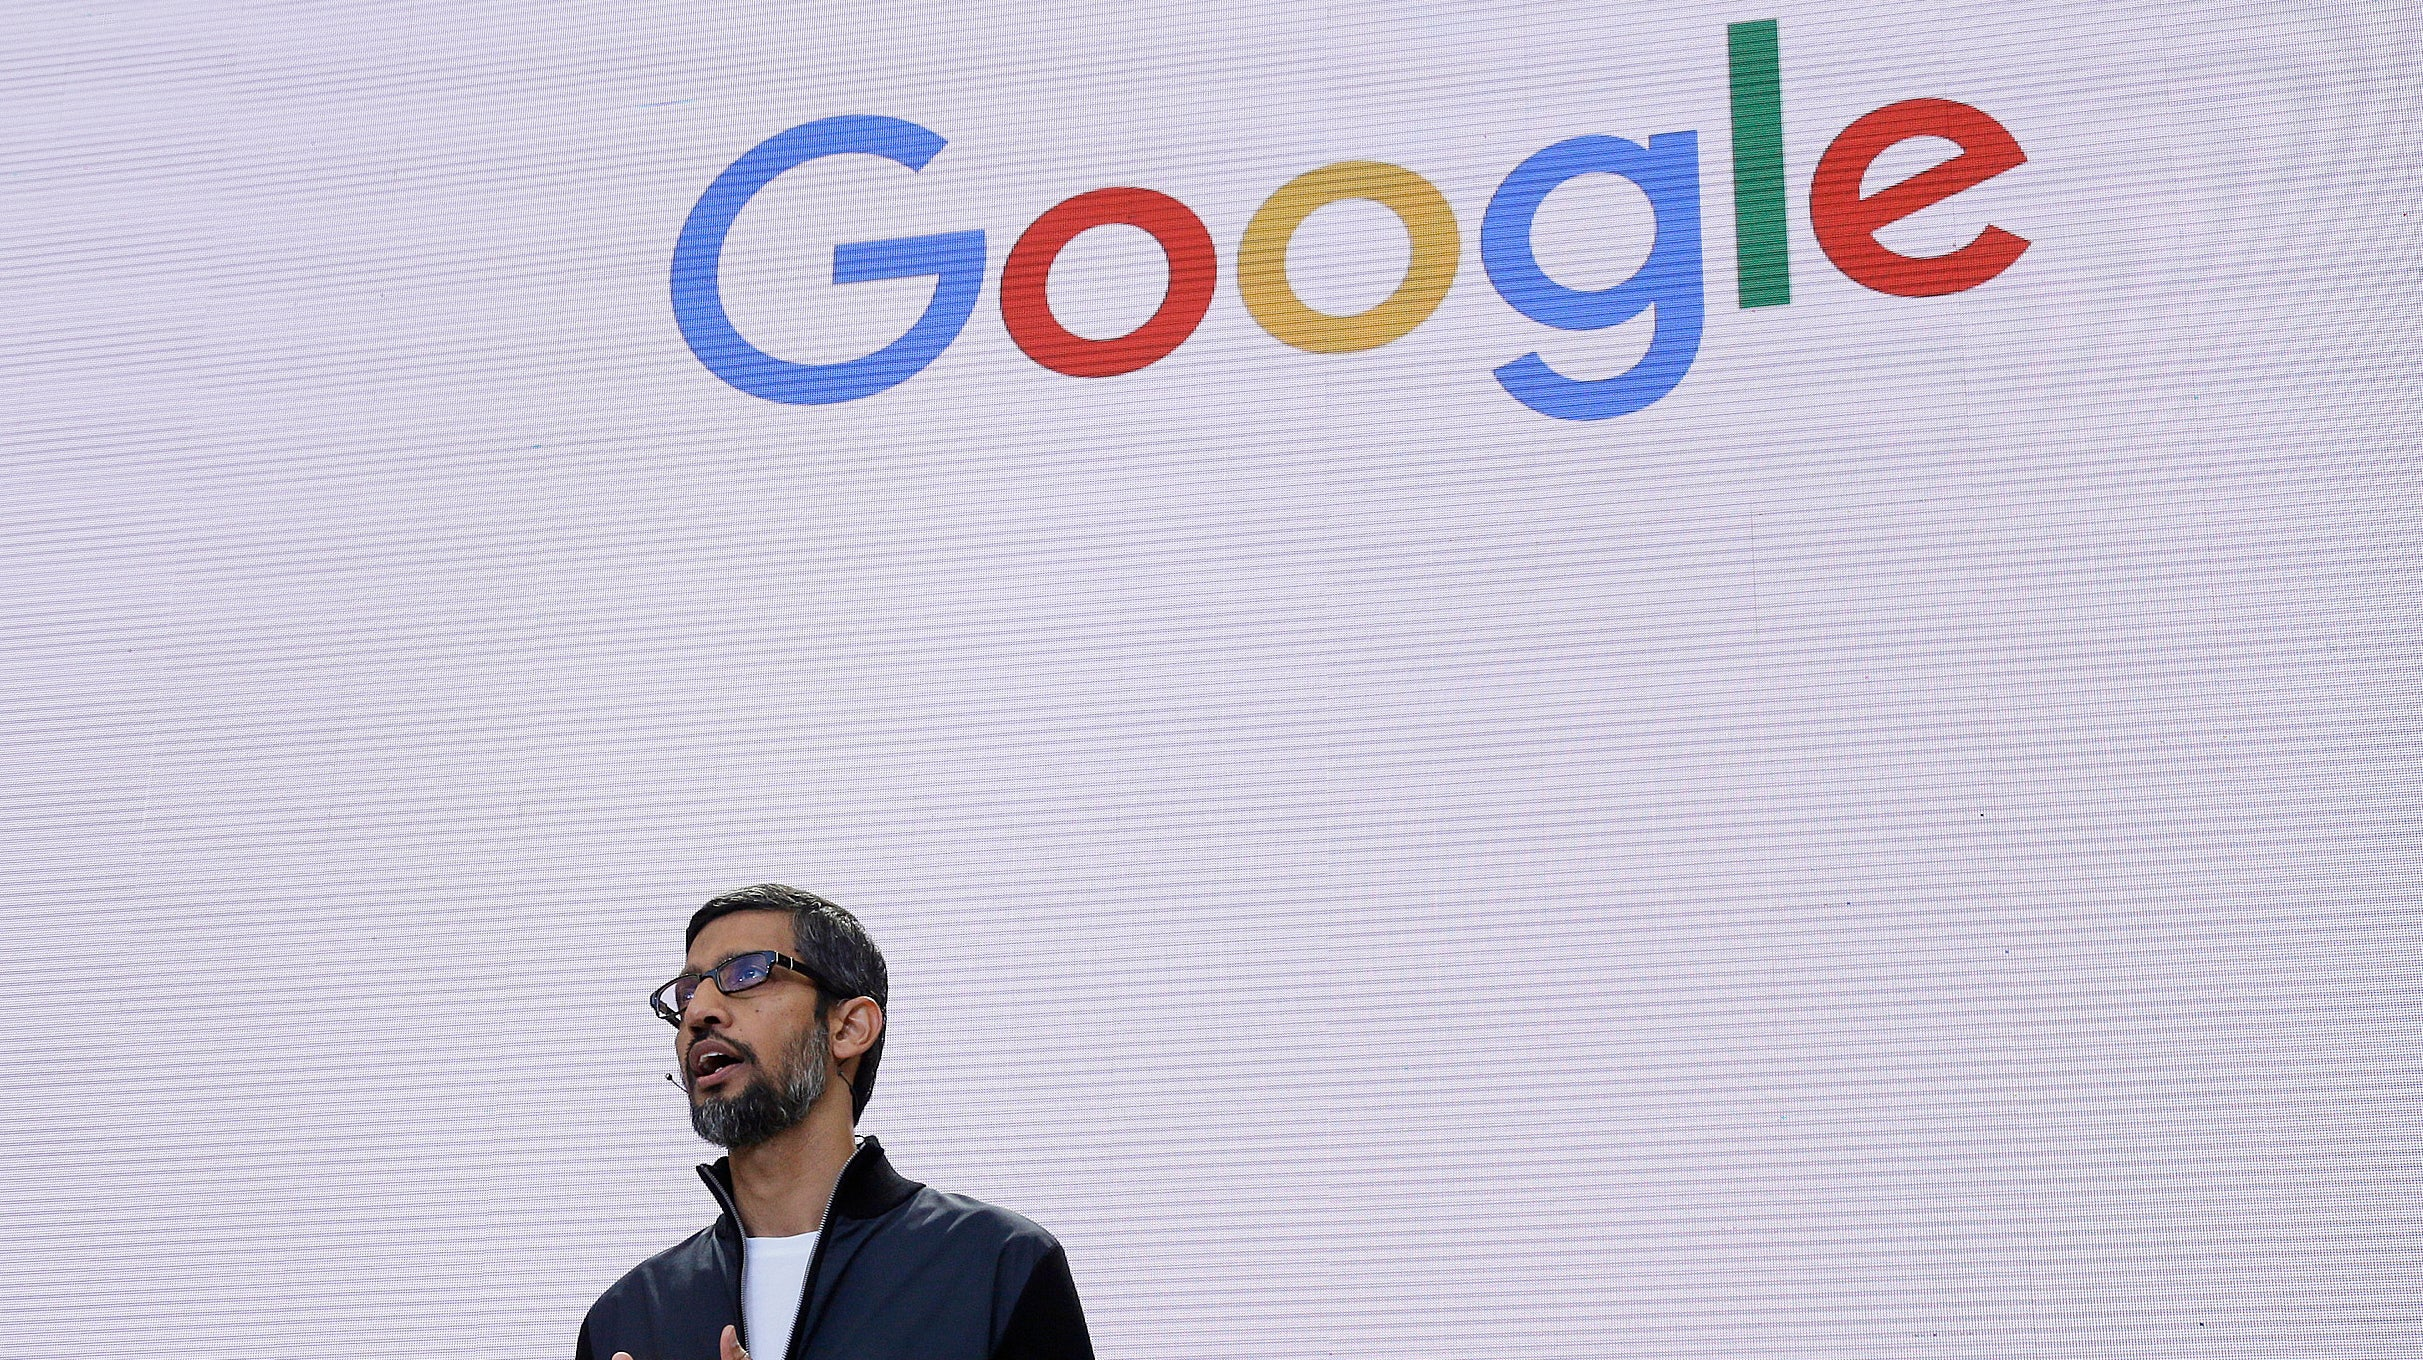 Report: Google's Chinese Search Prototype Logs Phone Numbers, Hides Unapproved Pollution Data